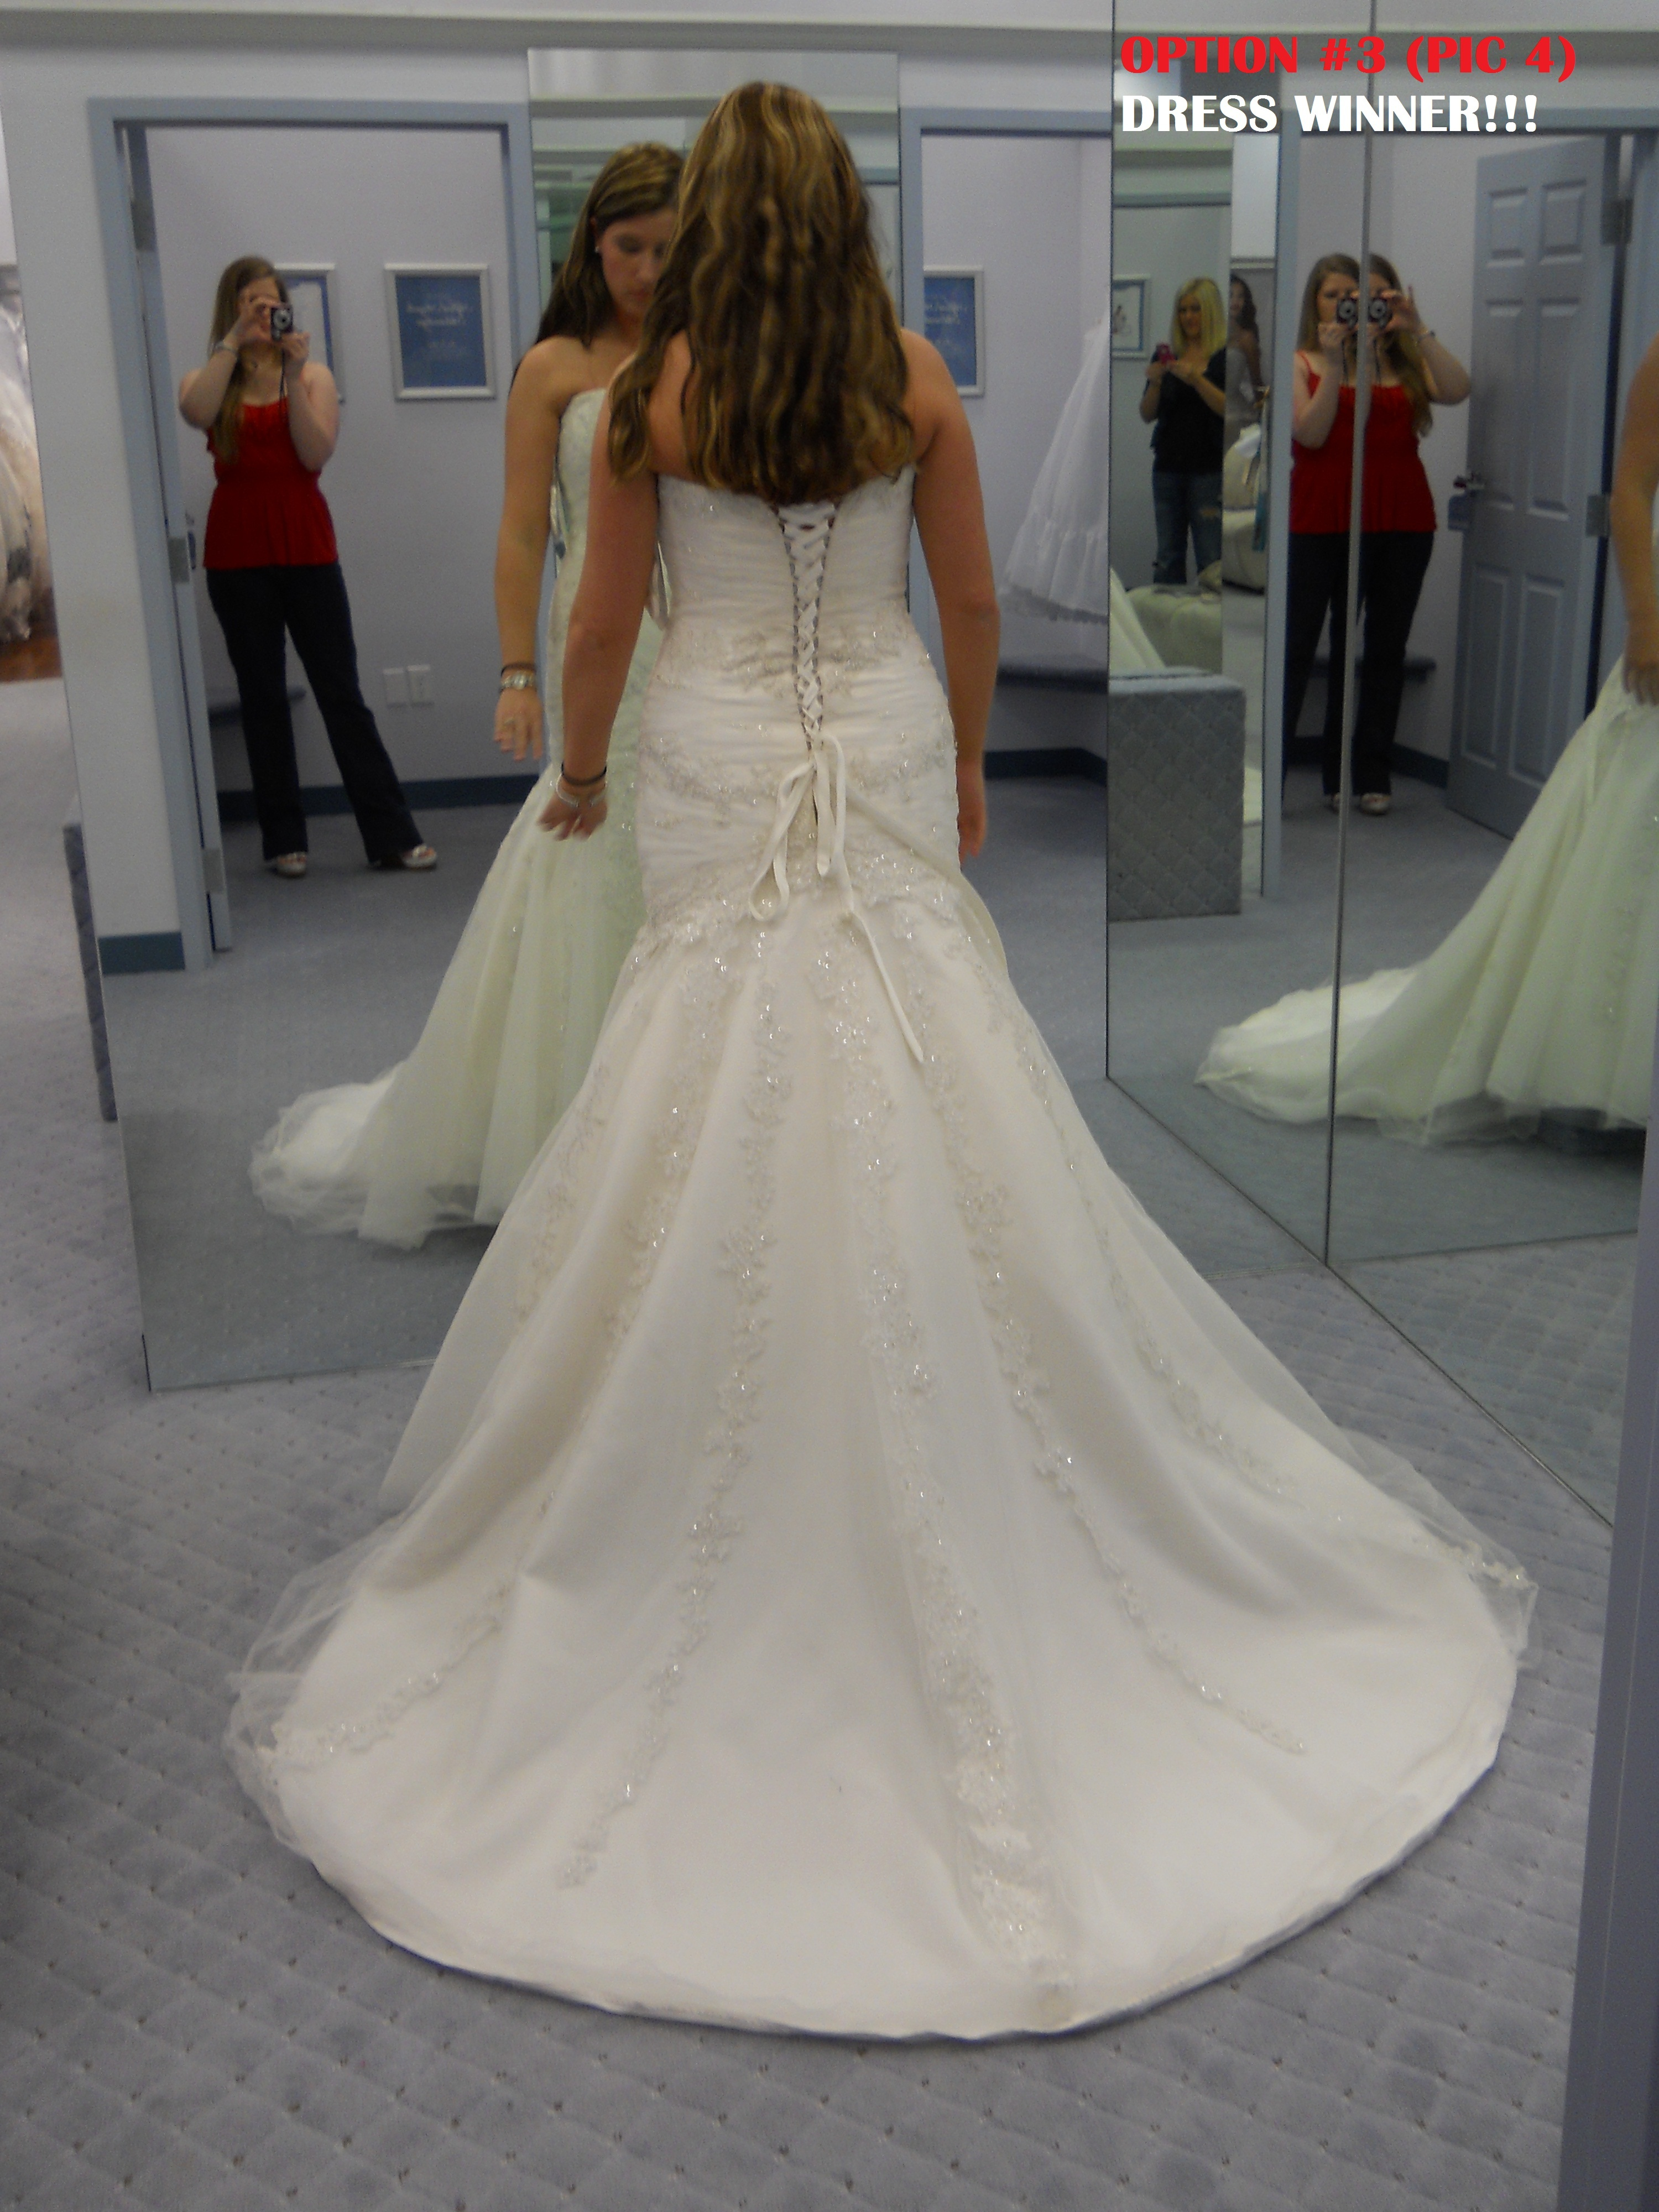 Ceremony, Flowers & Decor, Wedding Dresses, Lace Wedding Dresses, Fashion, white, ivory, dress, Train, Wedding, And, Lace, Inspiration board, Chapel, Fit, Flare, Alfred, Angelo